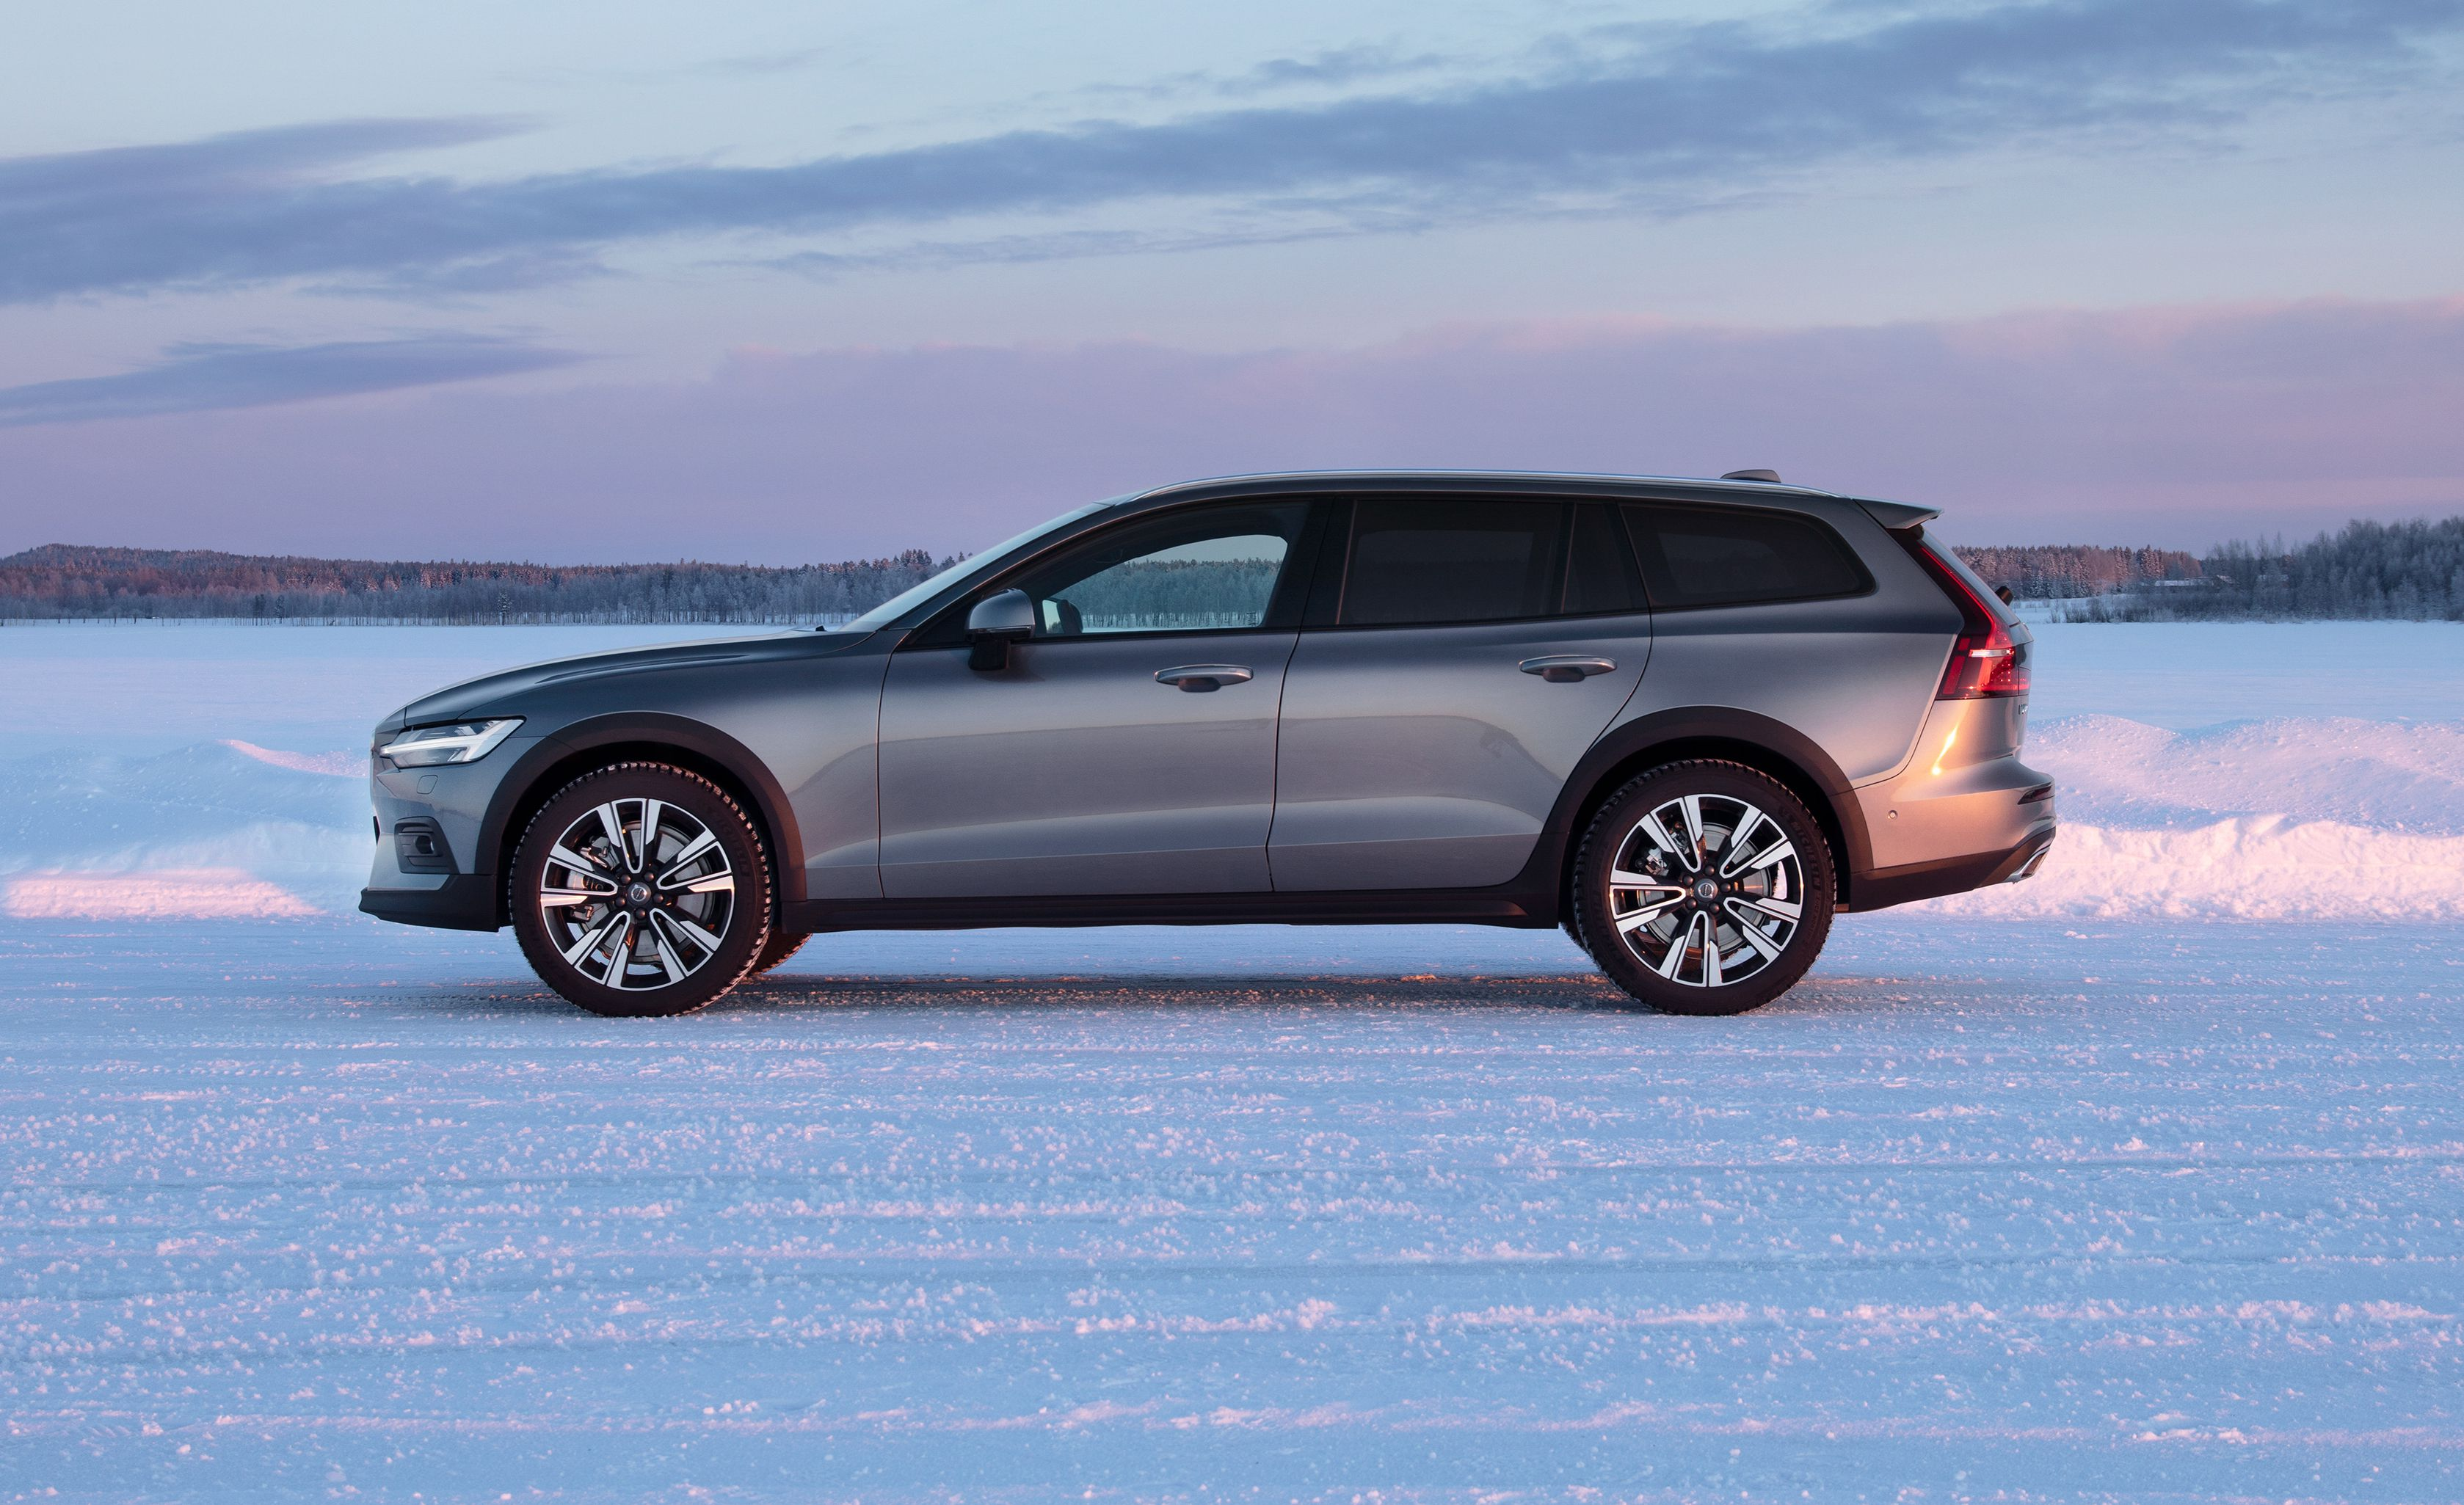 57 The Best 2020 Volvo V60 Cross Country Prices